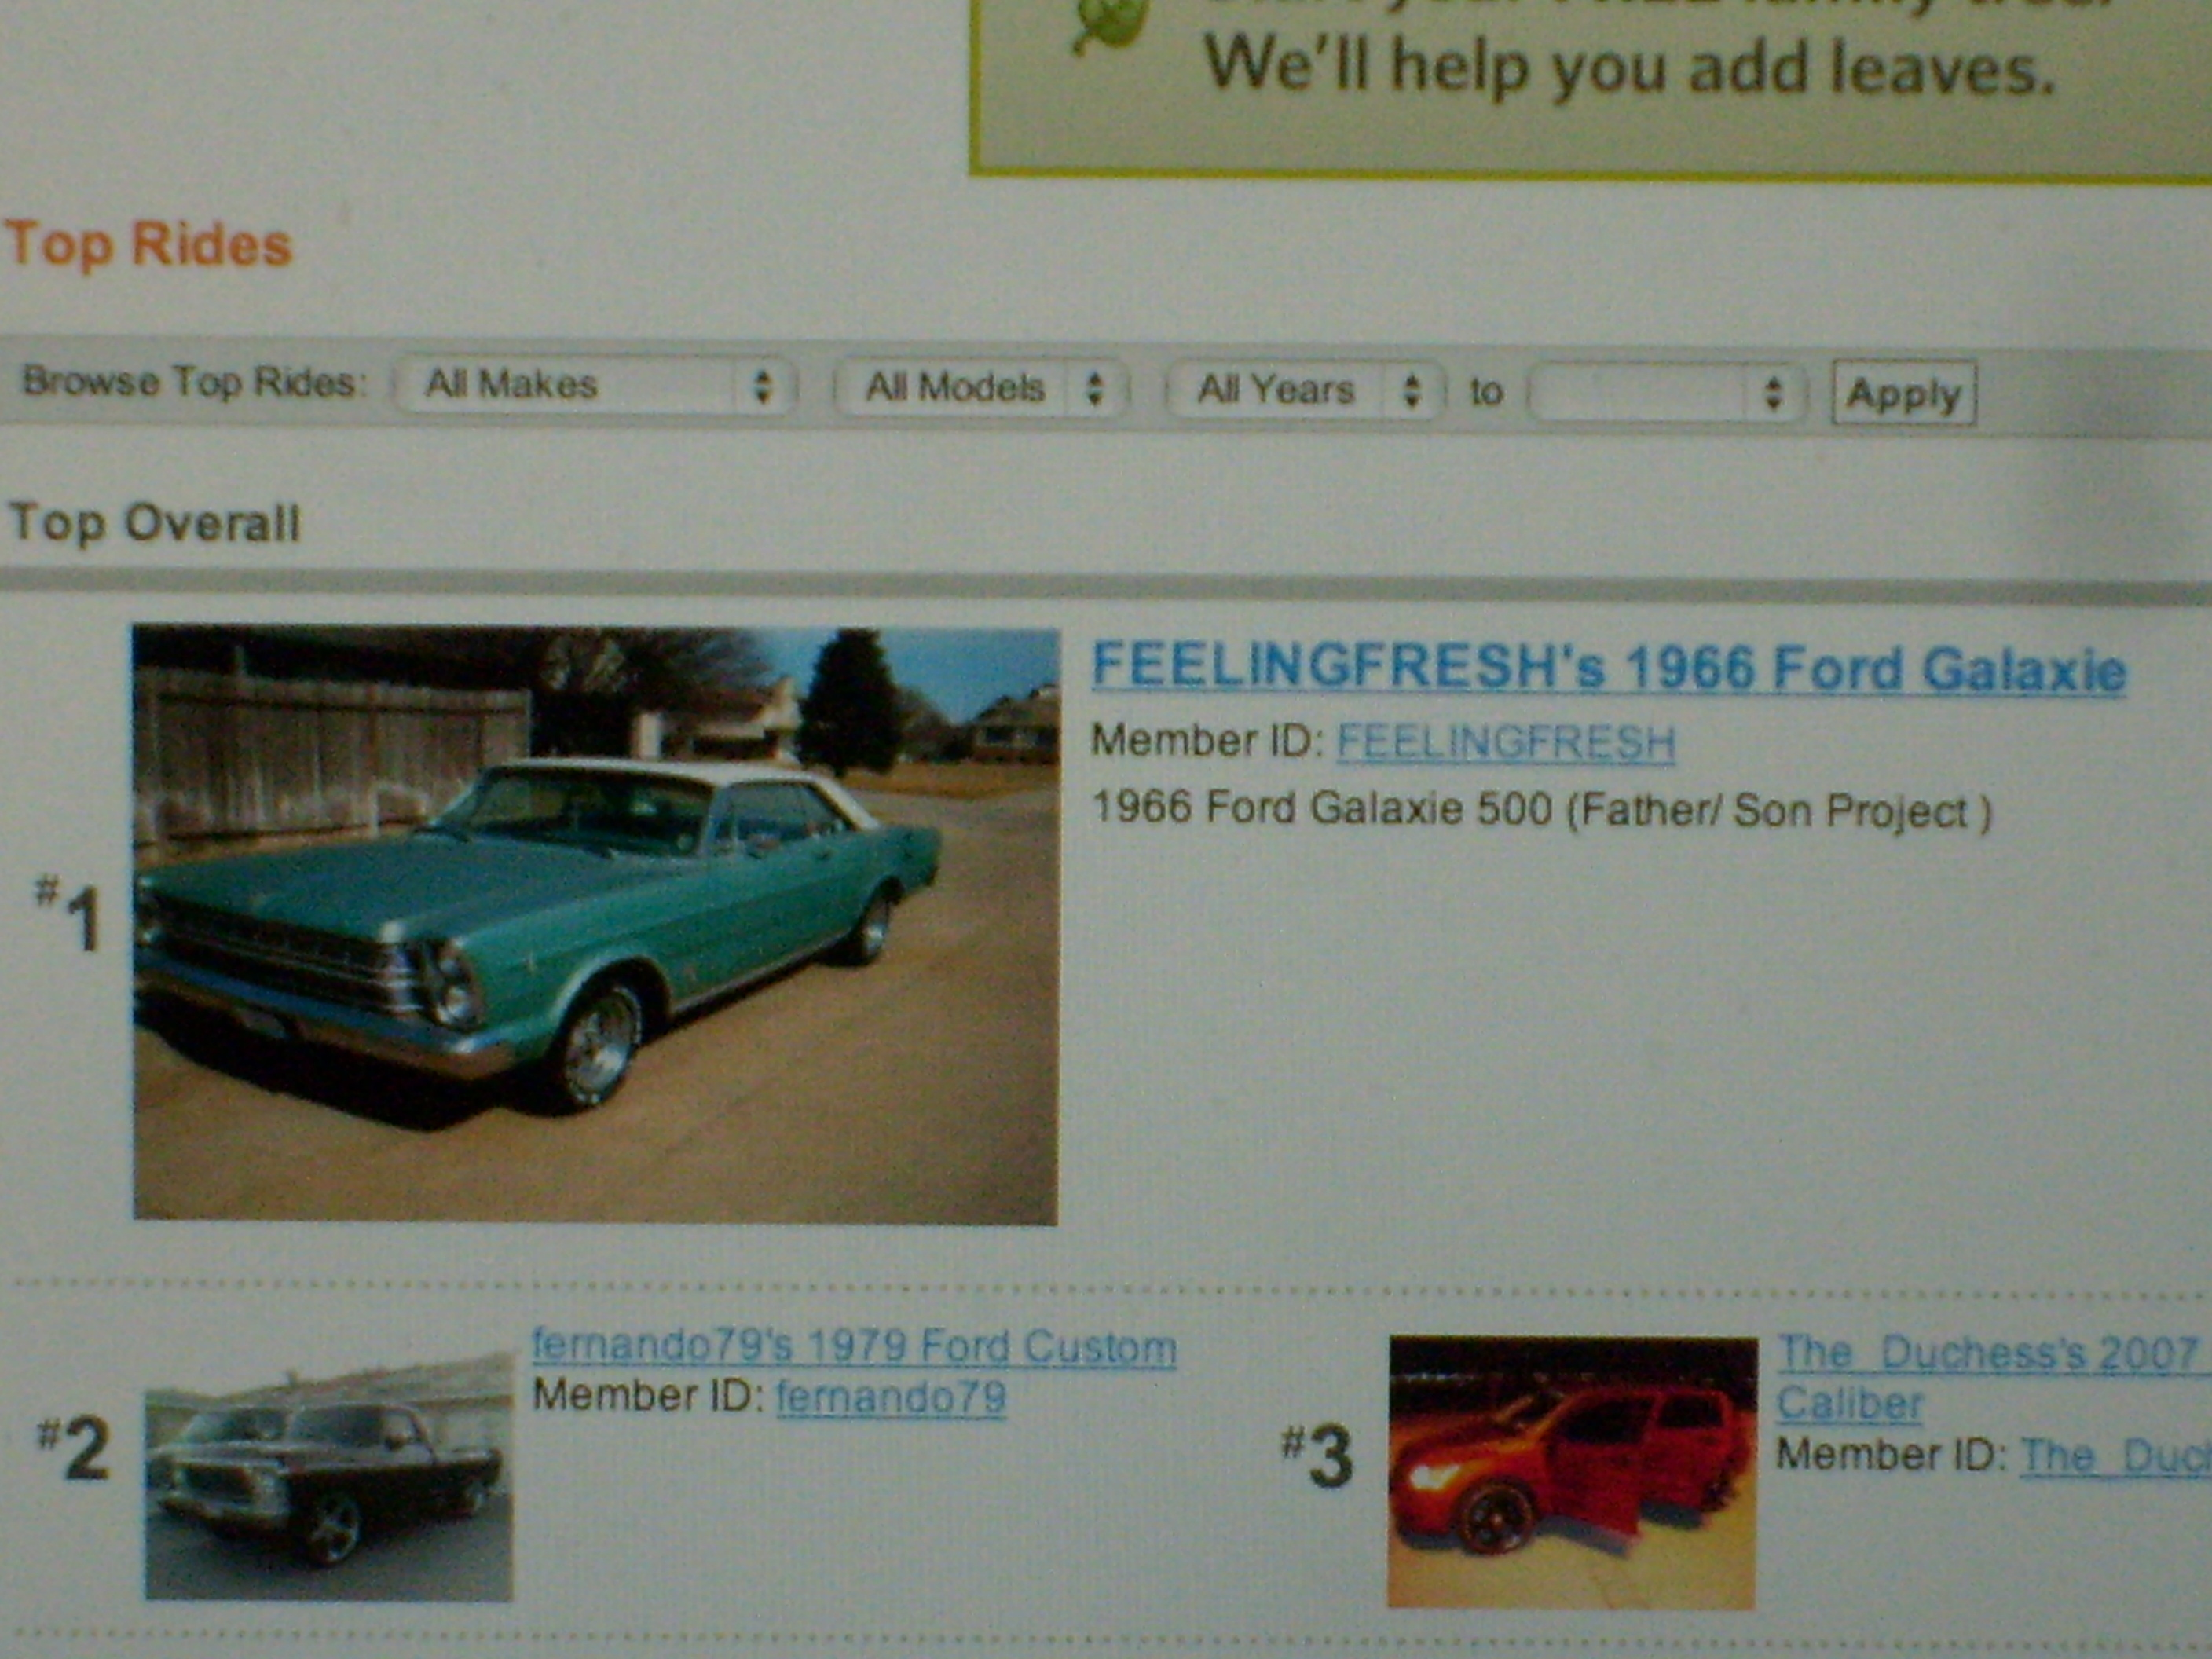 FEELINGFRESH 1966 Ford Galaxie 12946794